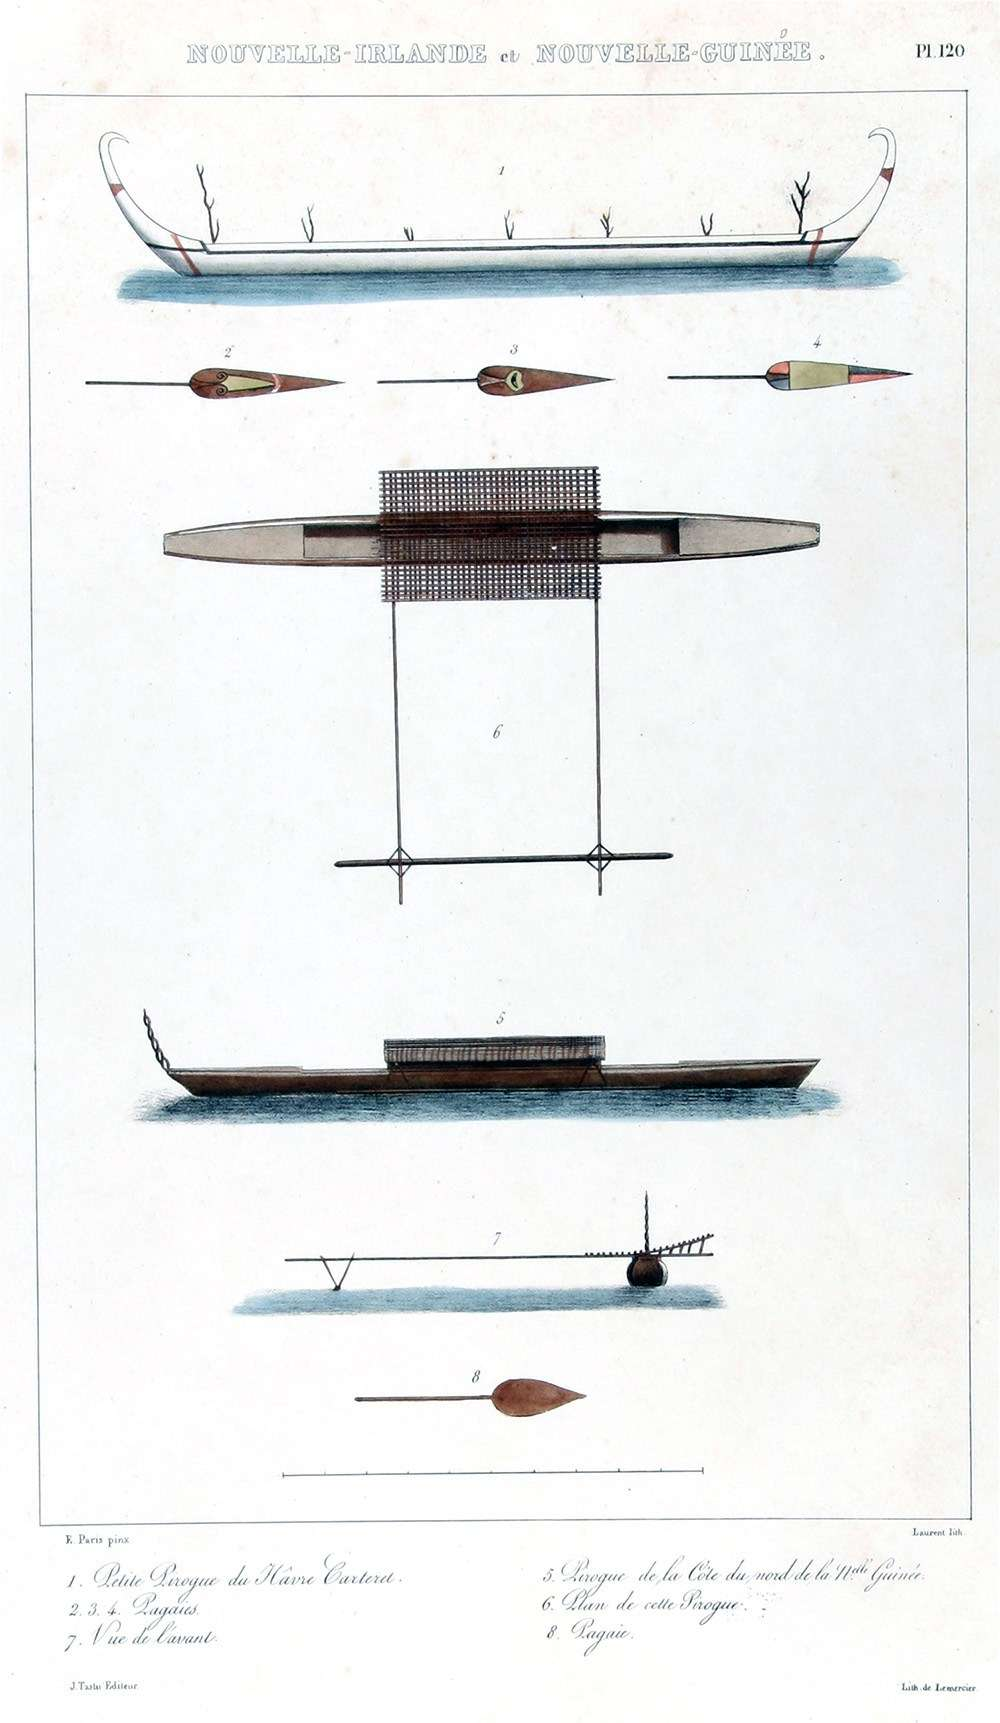 Outrigger canoes from New Ireland and New Guinea. ANMM collection 00046855.